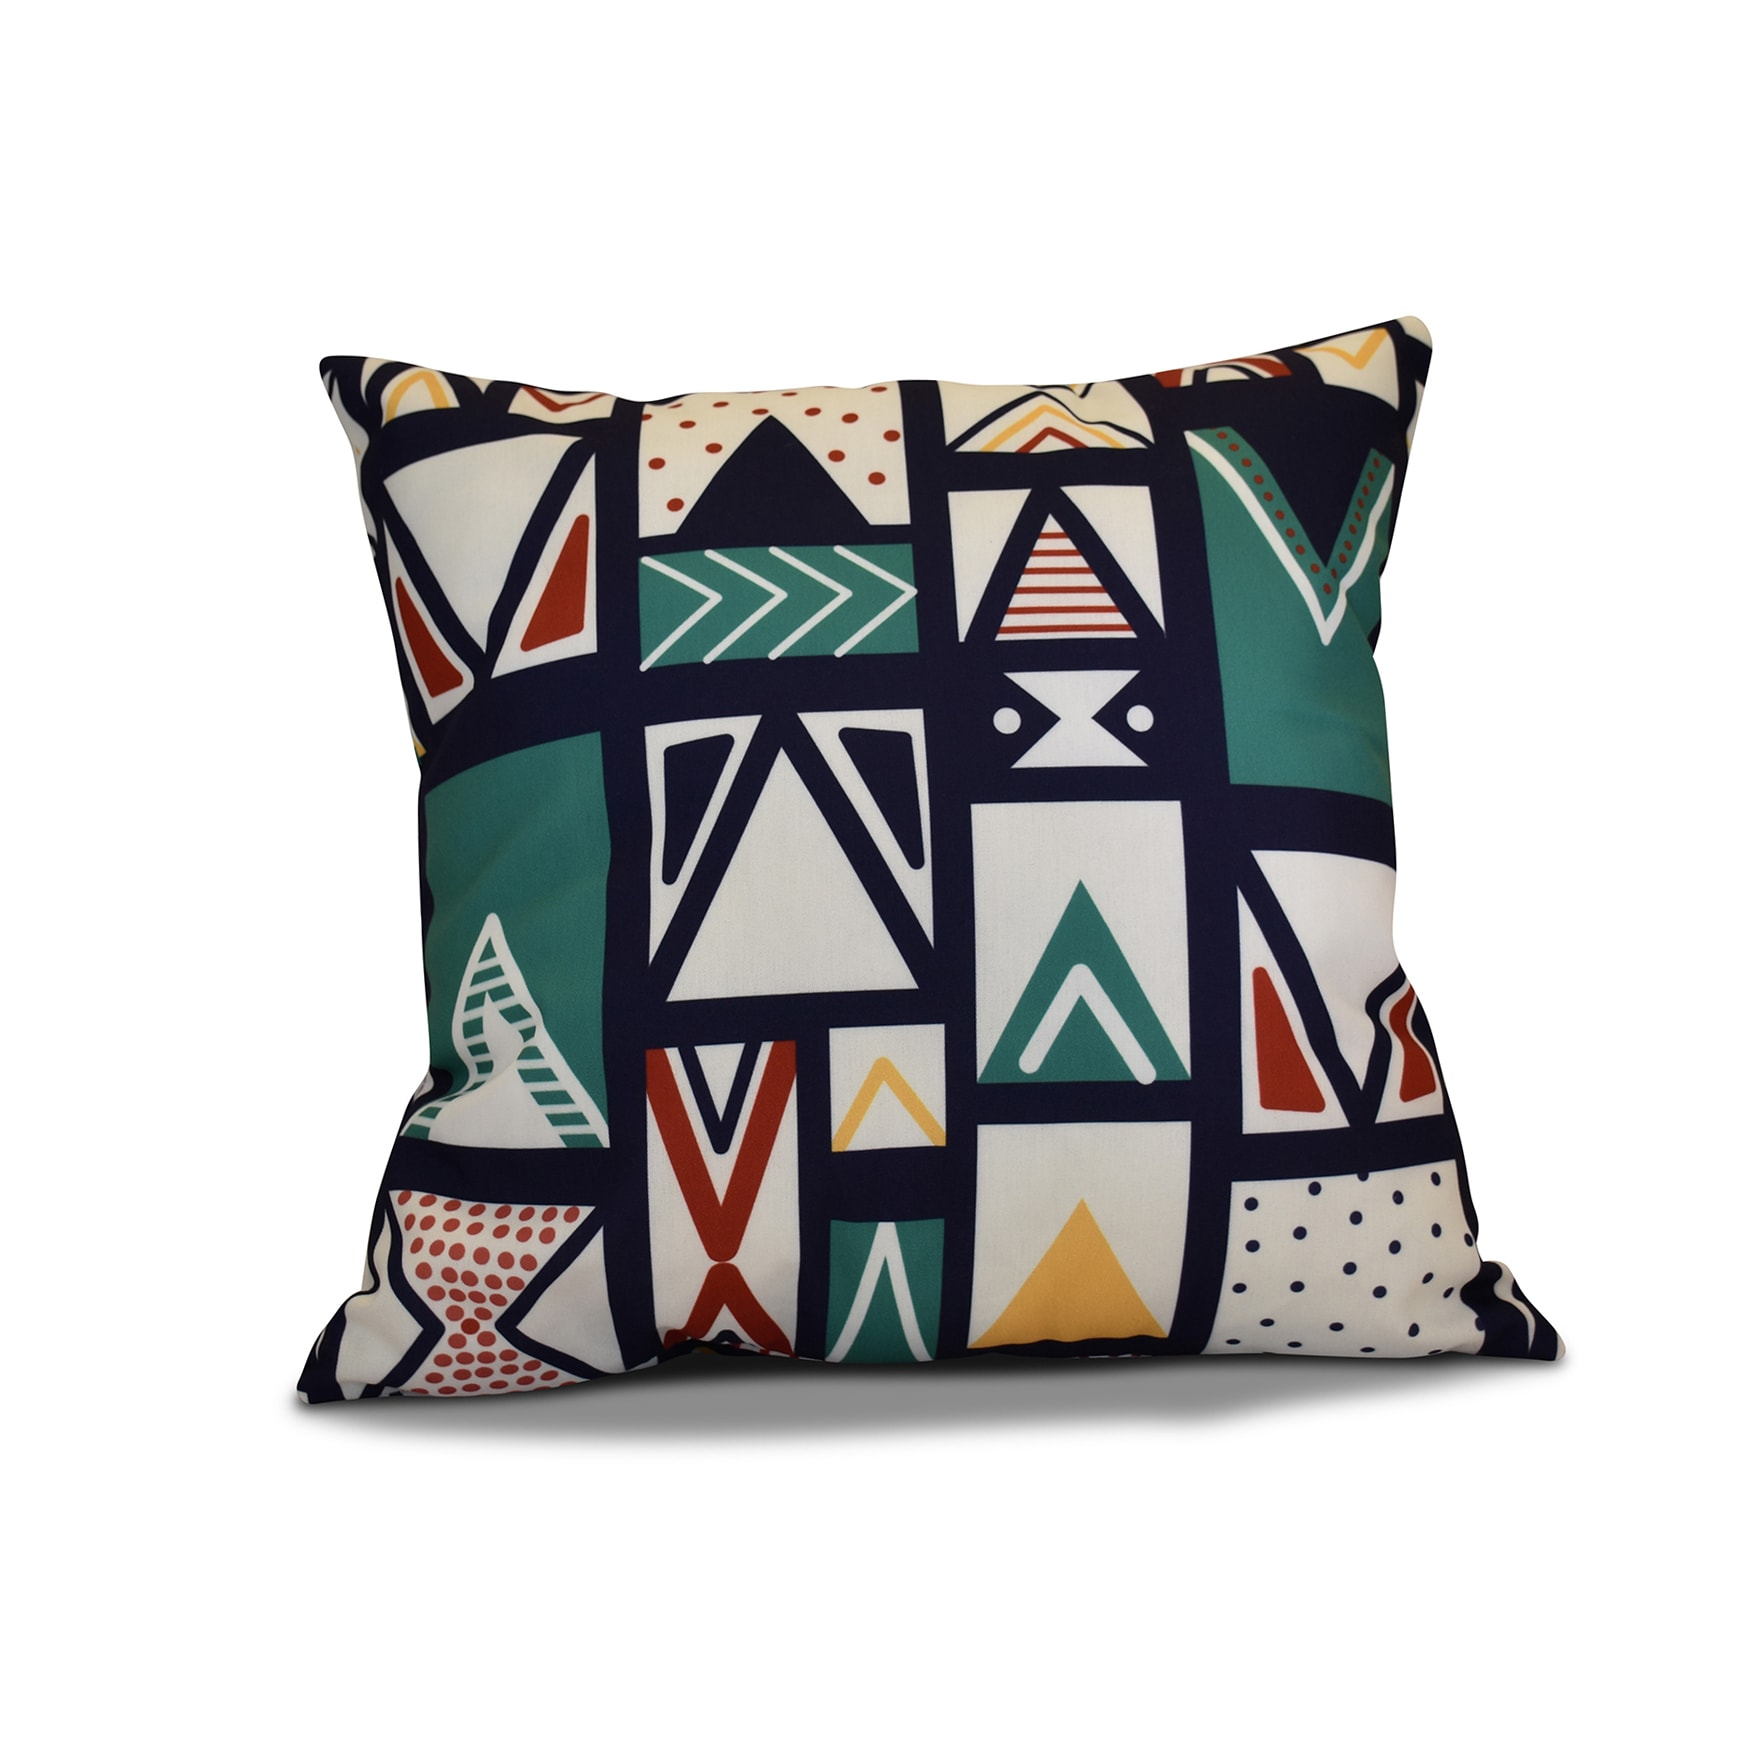 18 x 18-inch, Merry Susan, Geometric Holiday Print Pillow (White)